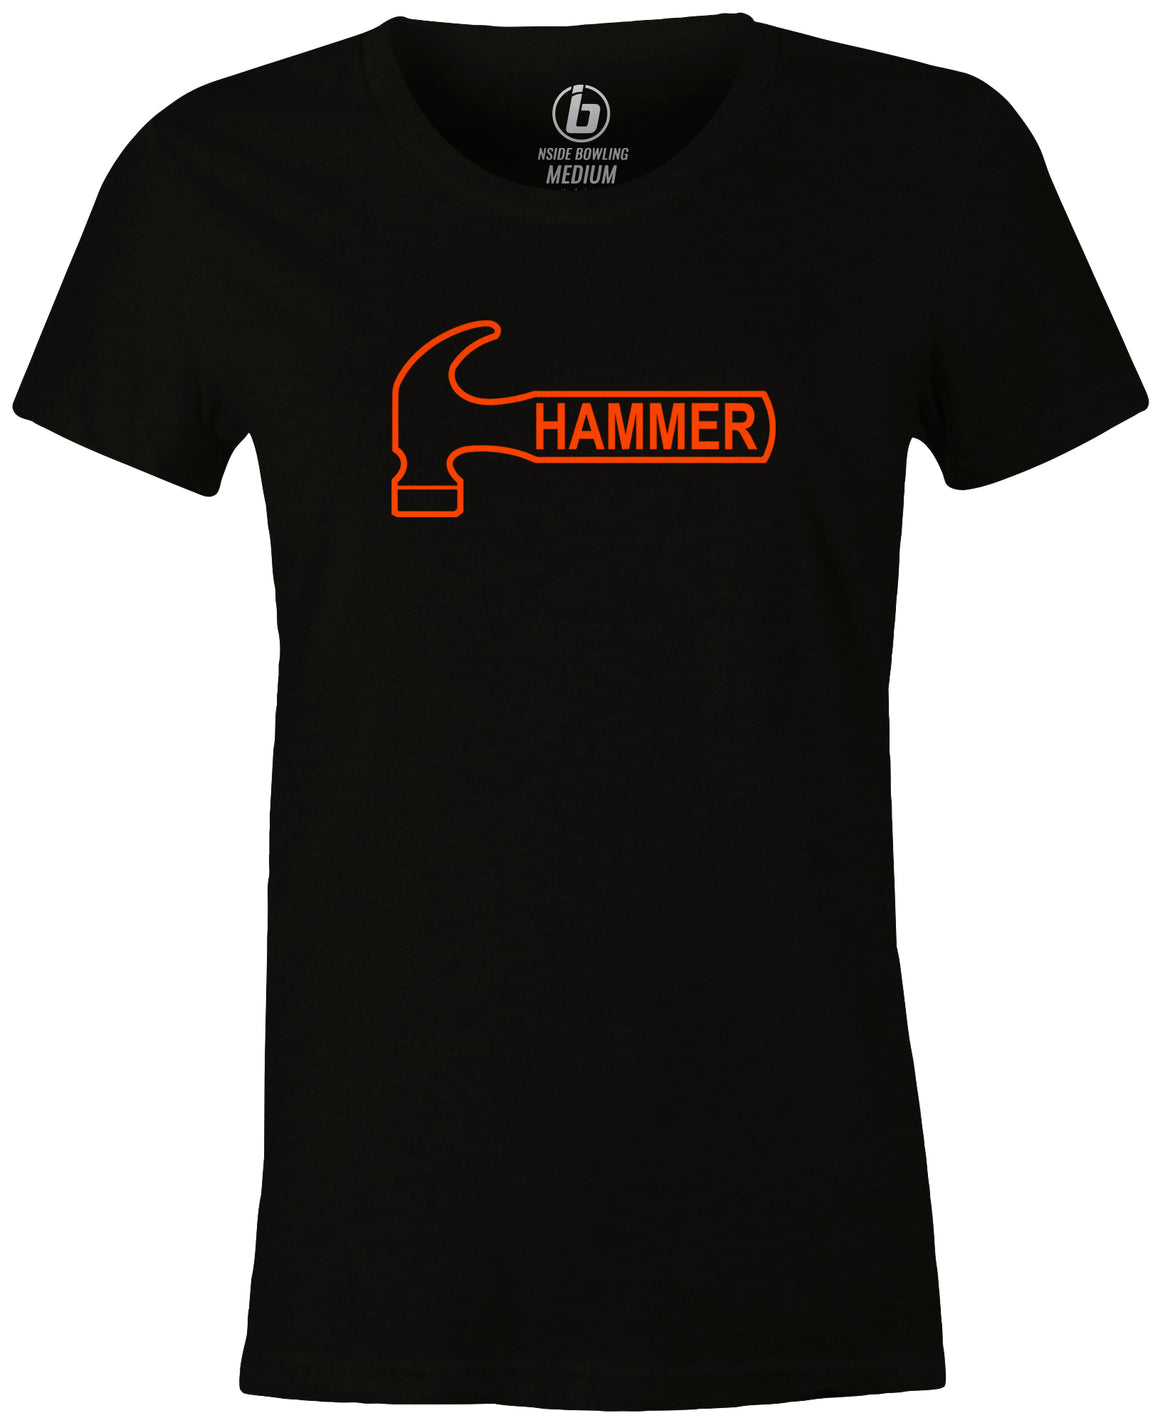 Hammer Logo Women's T-Shirt, Black, Bowling, Tshirt, tee, tee-shirt, tee shirt, classic, bowling ball. black widow. purple hammer.